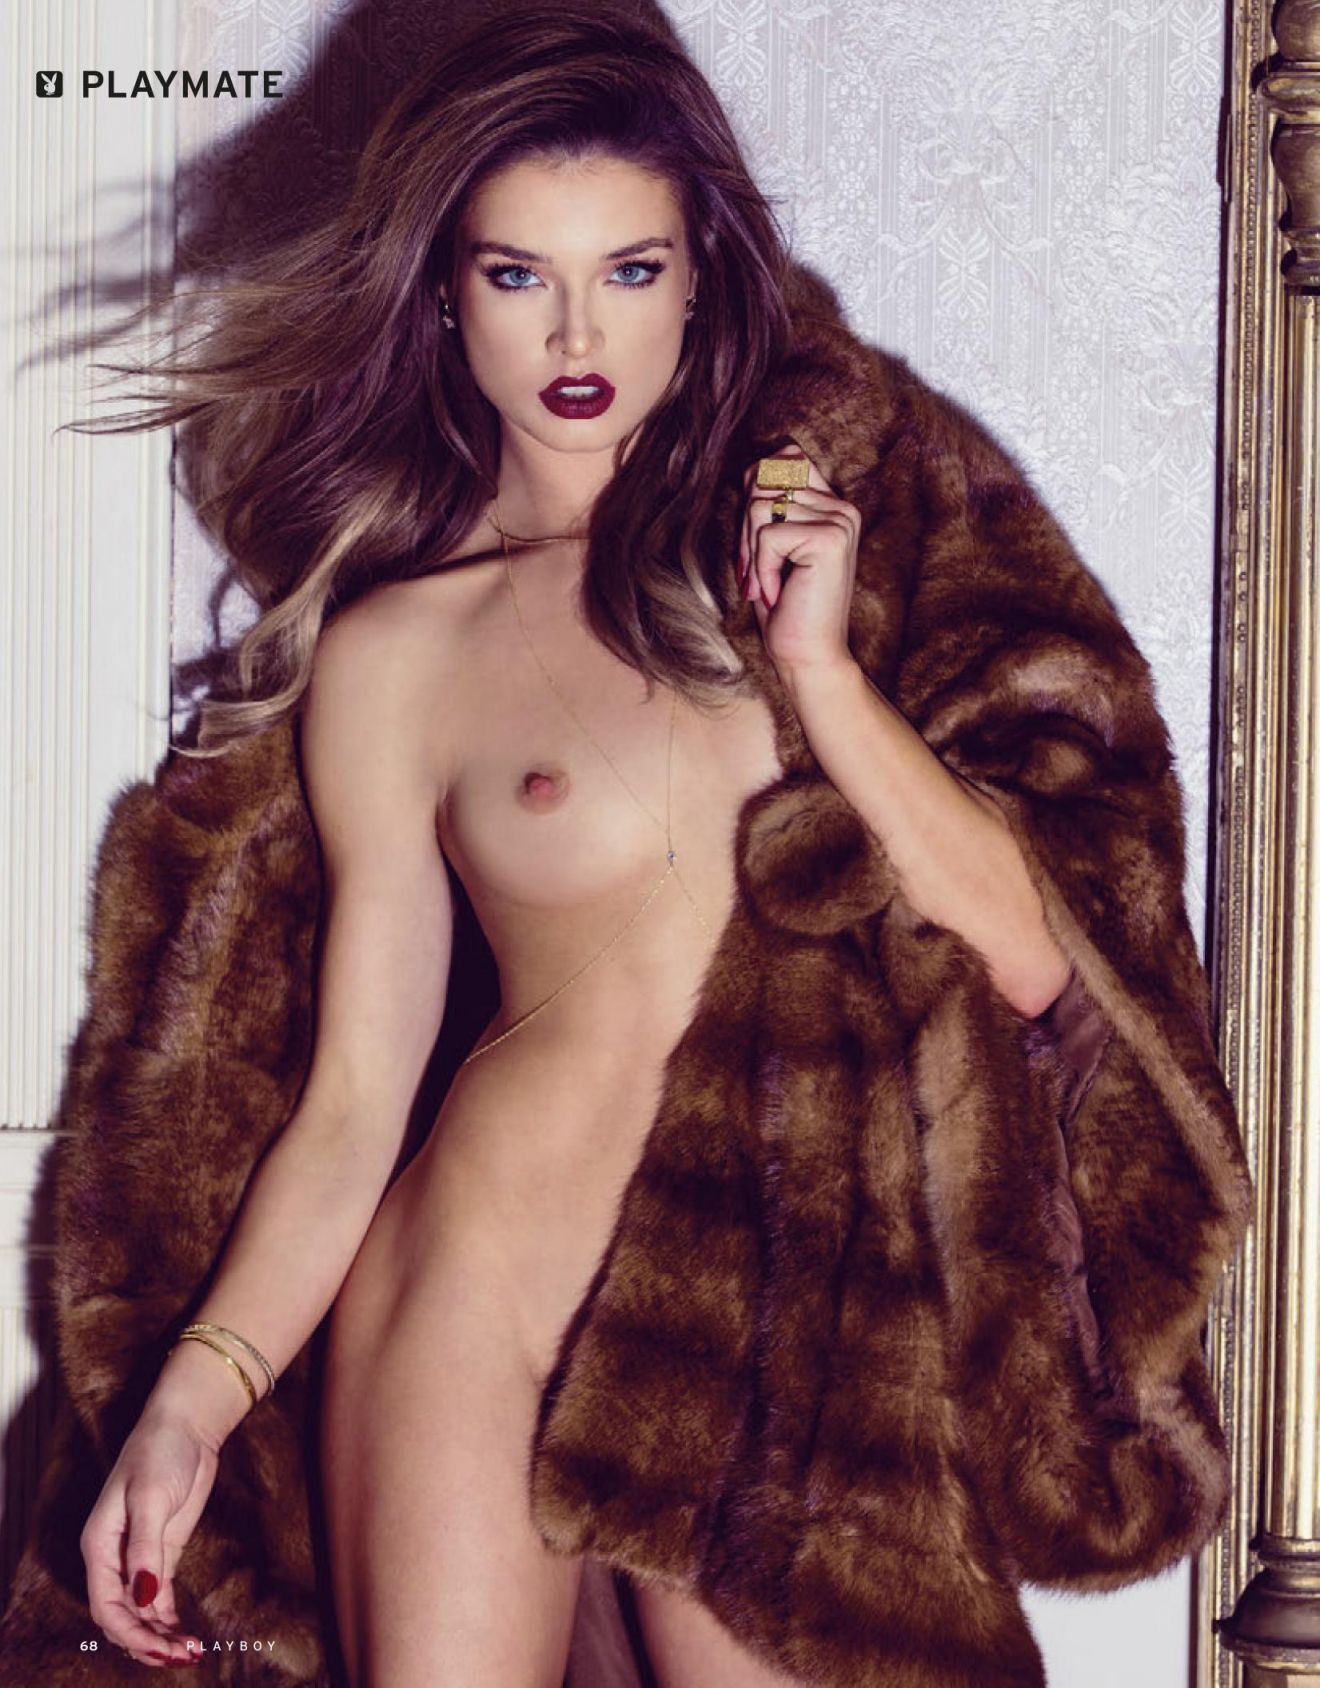 brittany brousseau topless brittany brousseau naked brittany brousseau